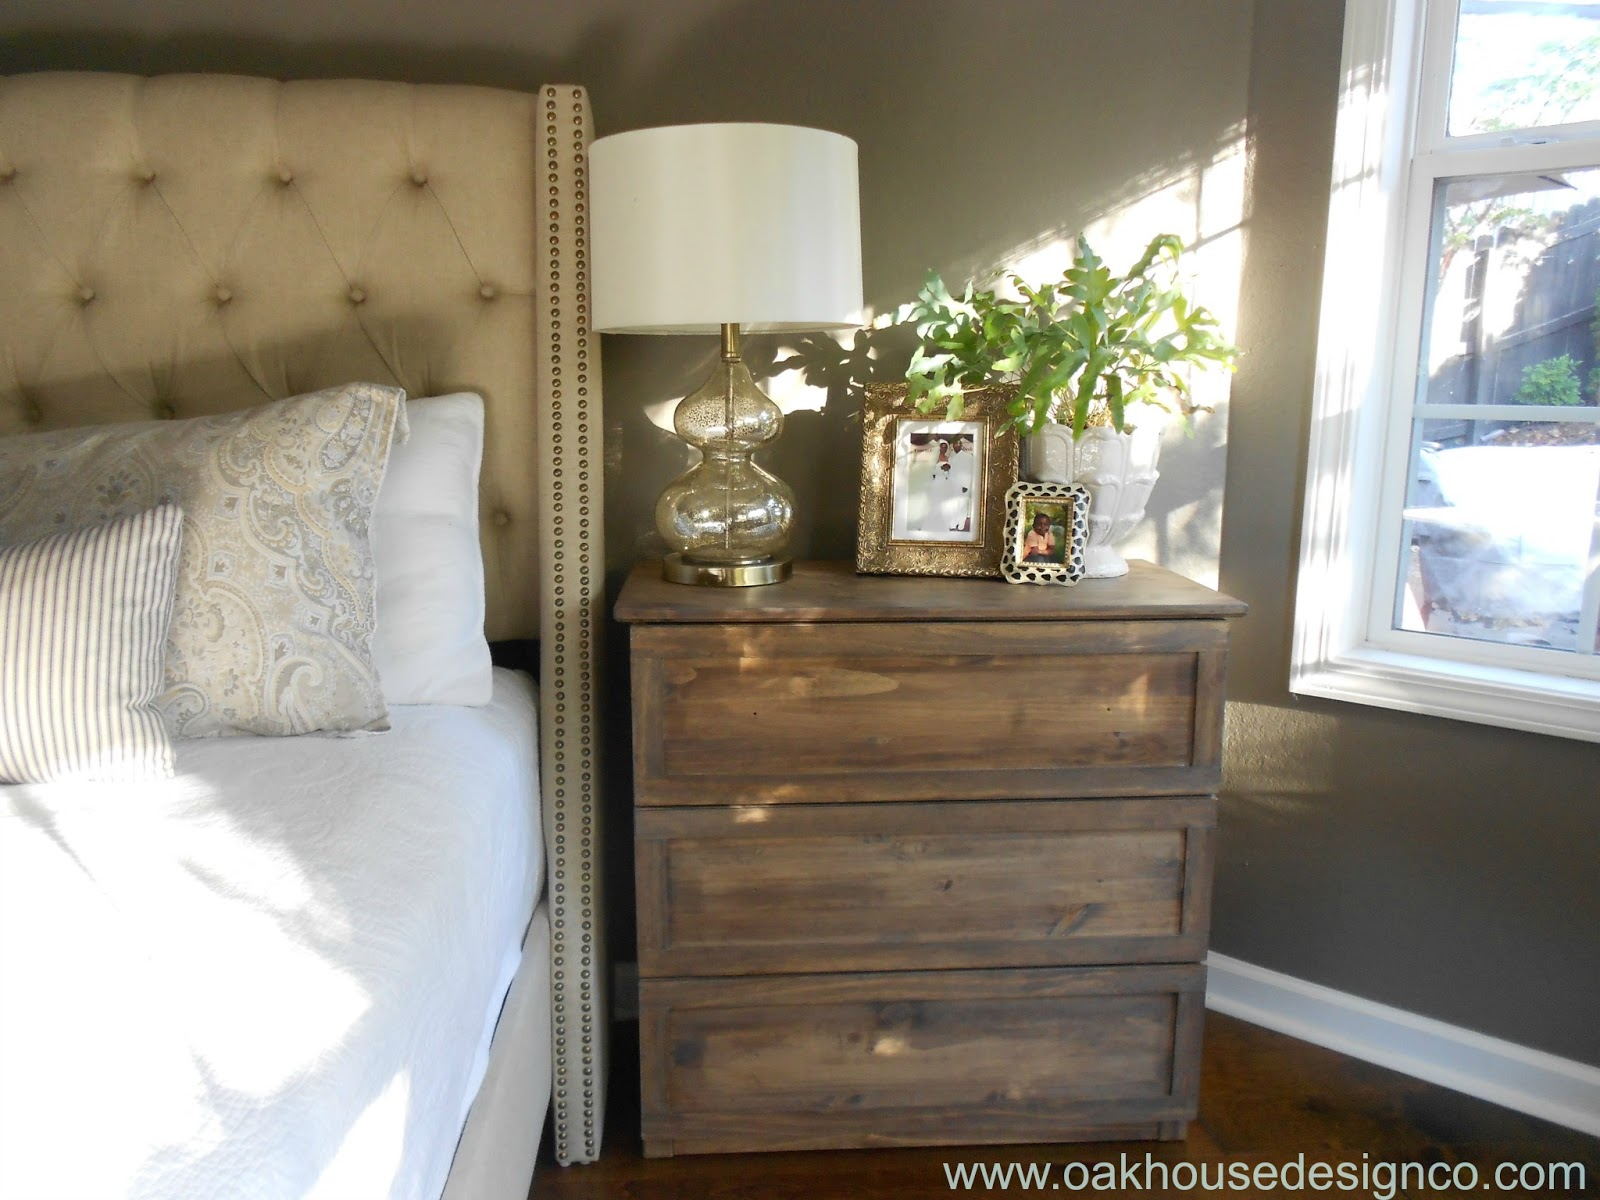 The New Nightstands An Ikea Tarva Hack Oak House Design Co